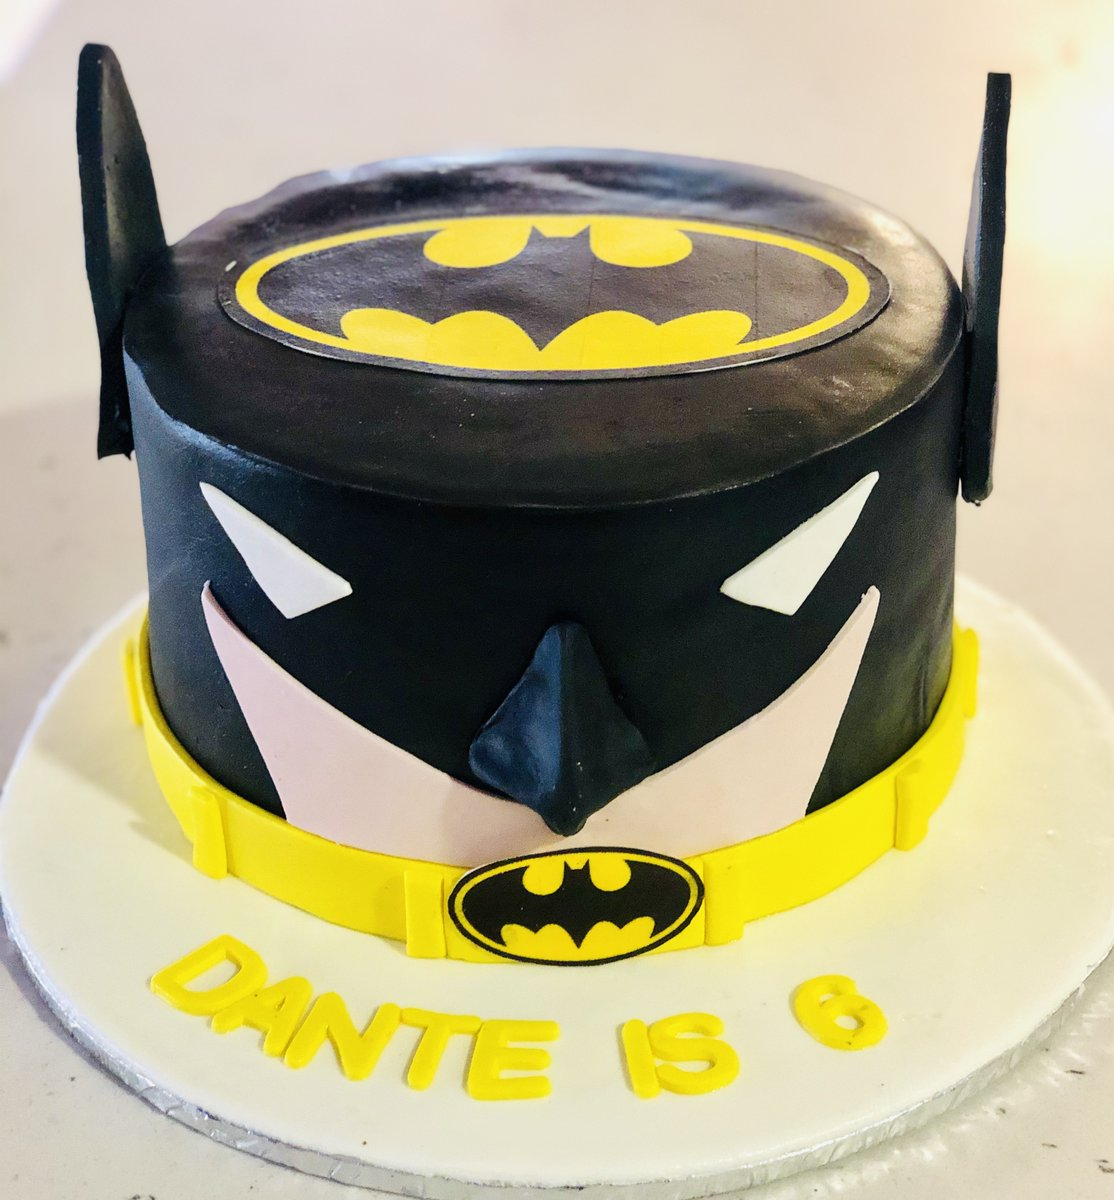 Pleasant Cake City On Twitter The Ultimate Batman Themed Cake Size 3Kgs Funny Birthday Cards Online Sheoxdamsfinfo